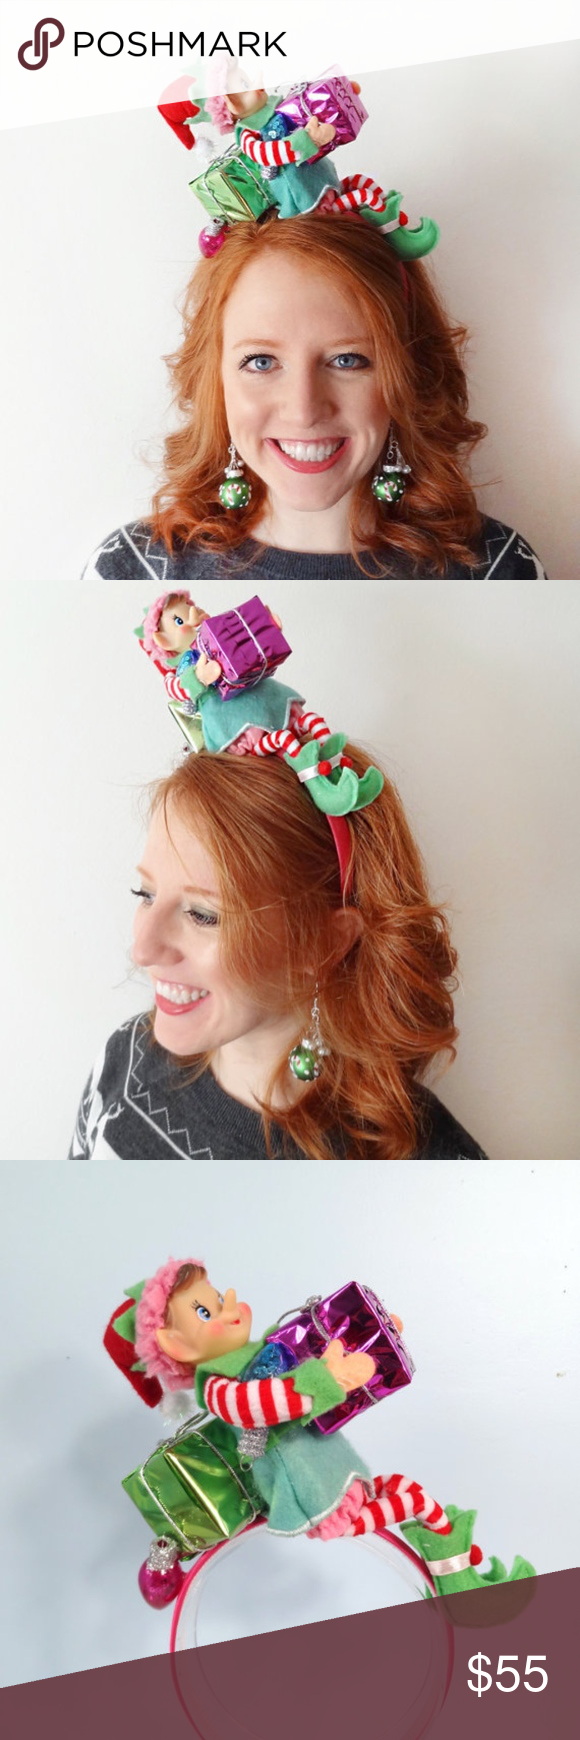 Christmas Headband For Ugly Sweater Party